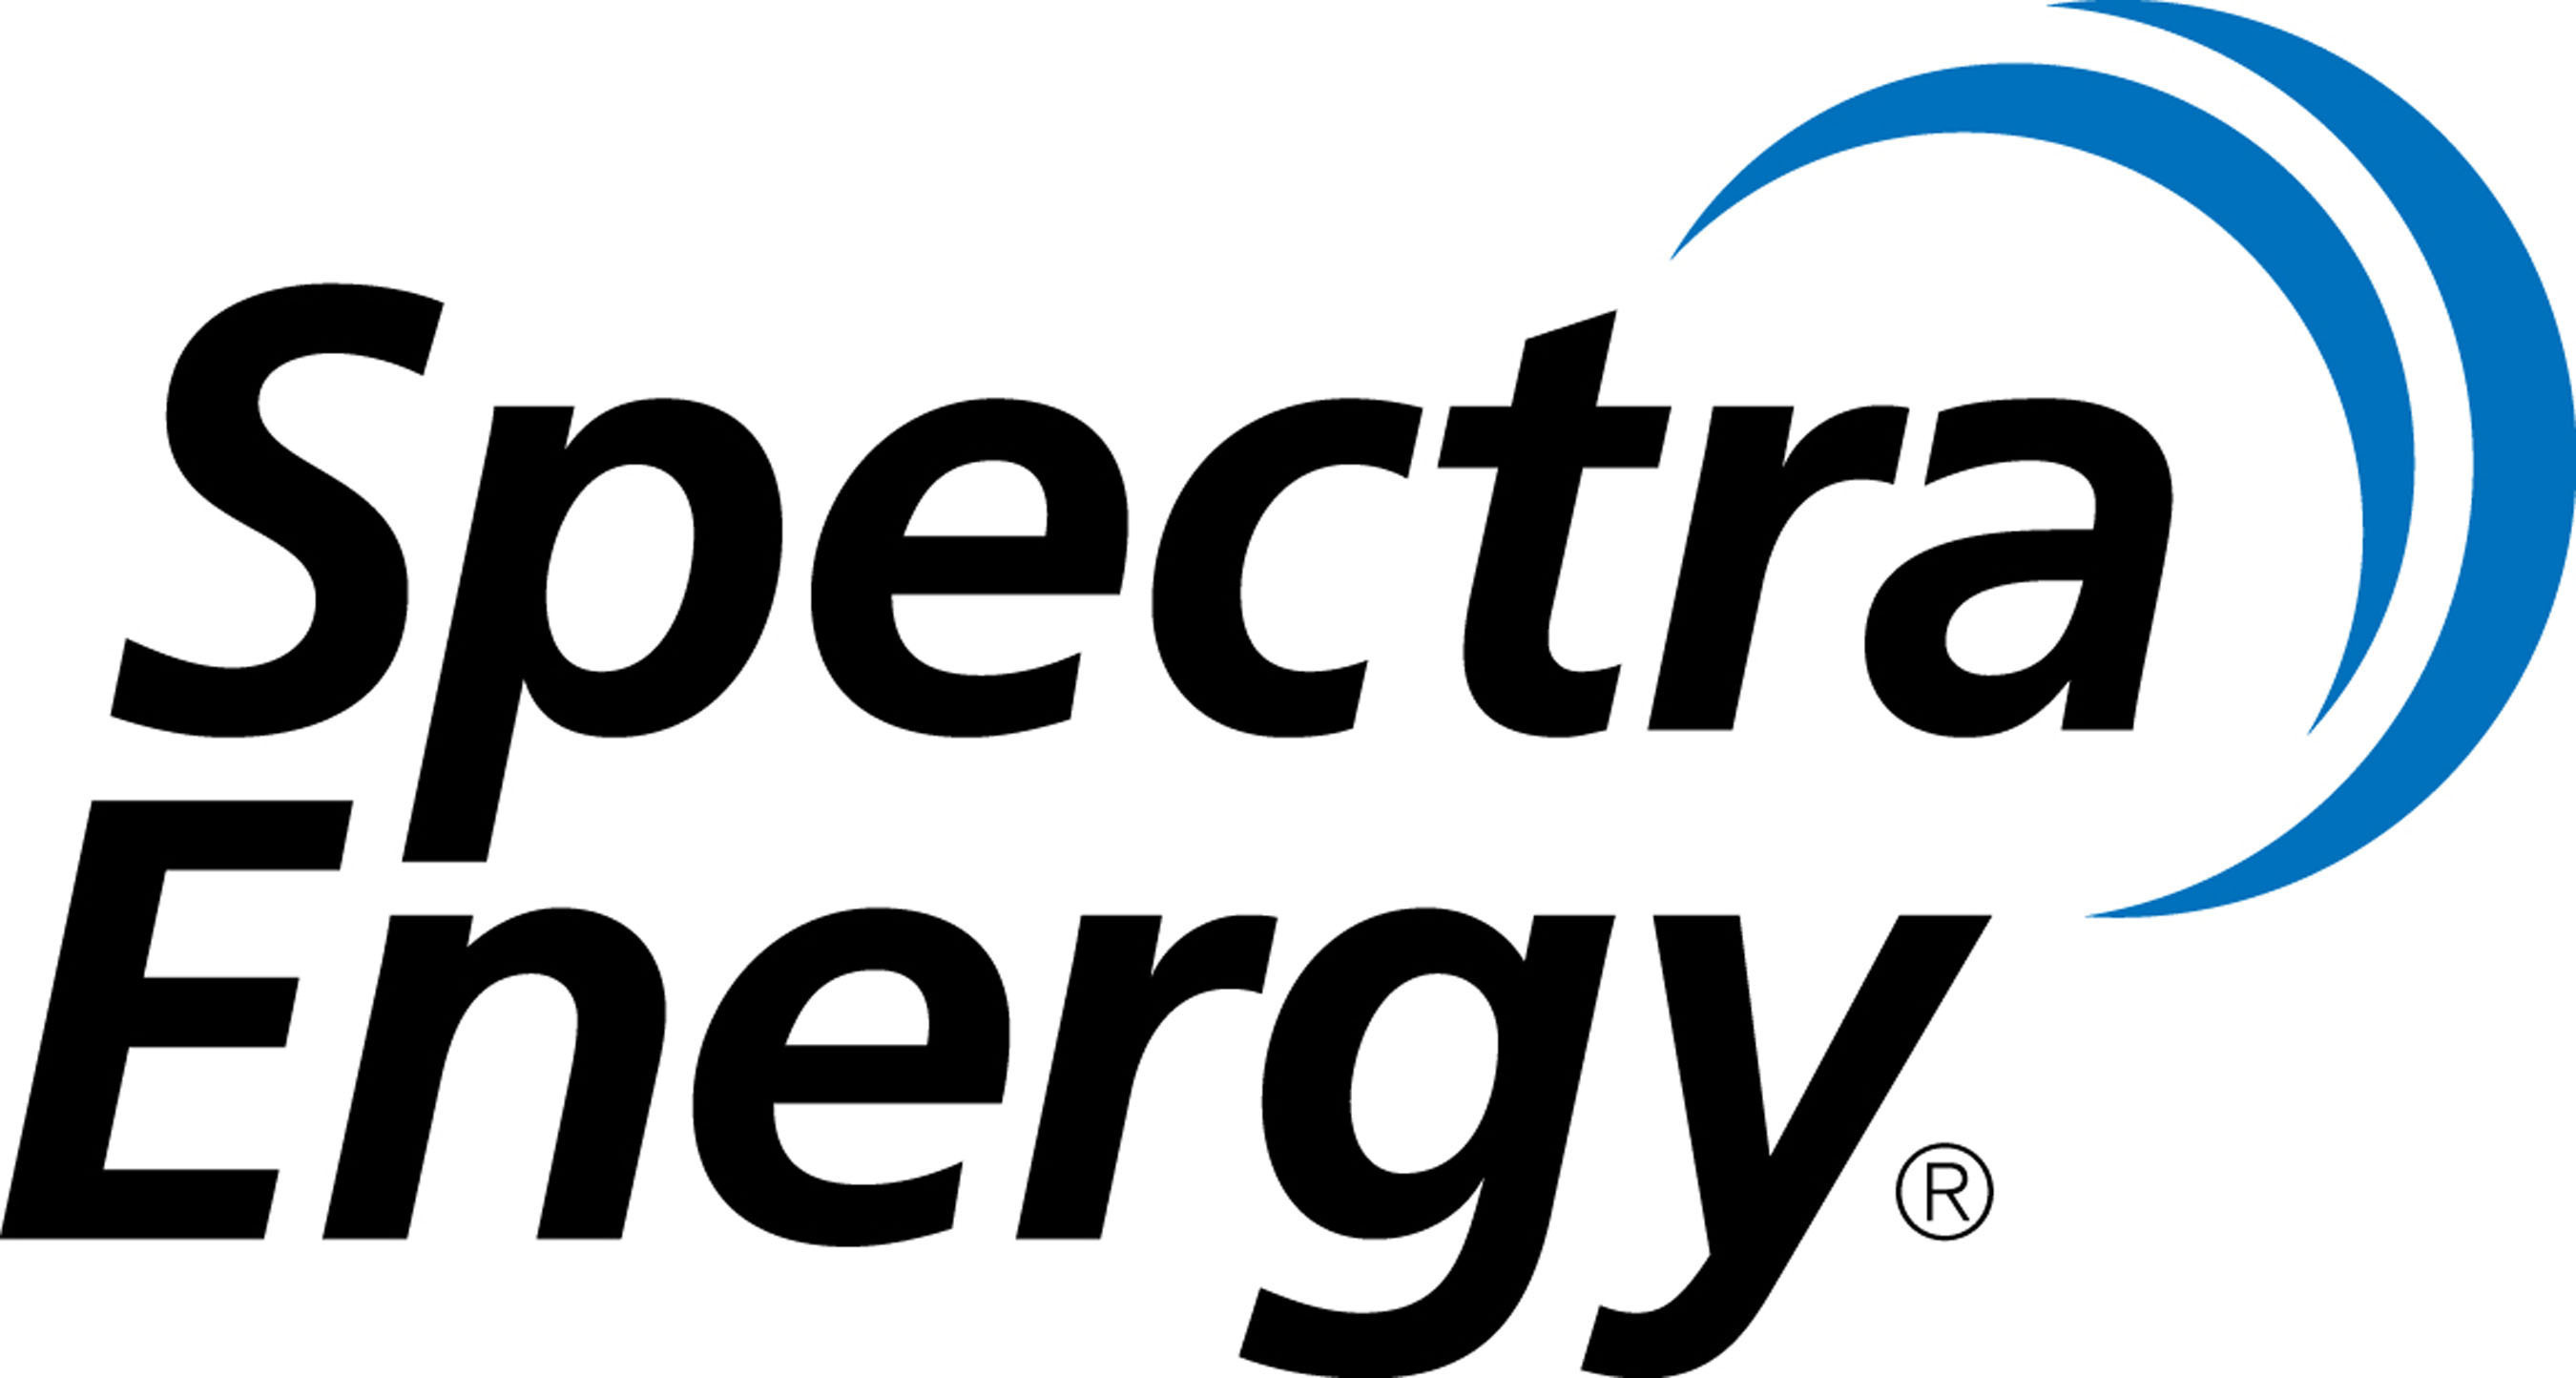 Enbridge And Spectra Energy Tobine To Create North America's Premier  Energy Infrastructurepany With C$165 Billion Enterprise Value